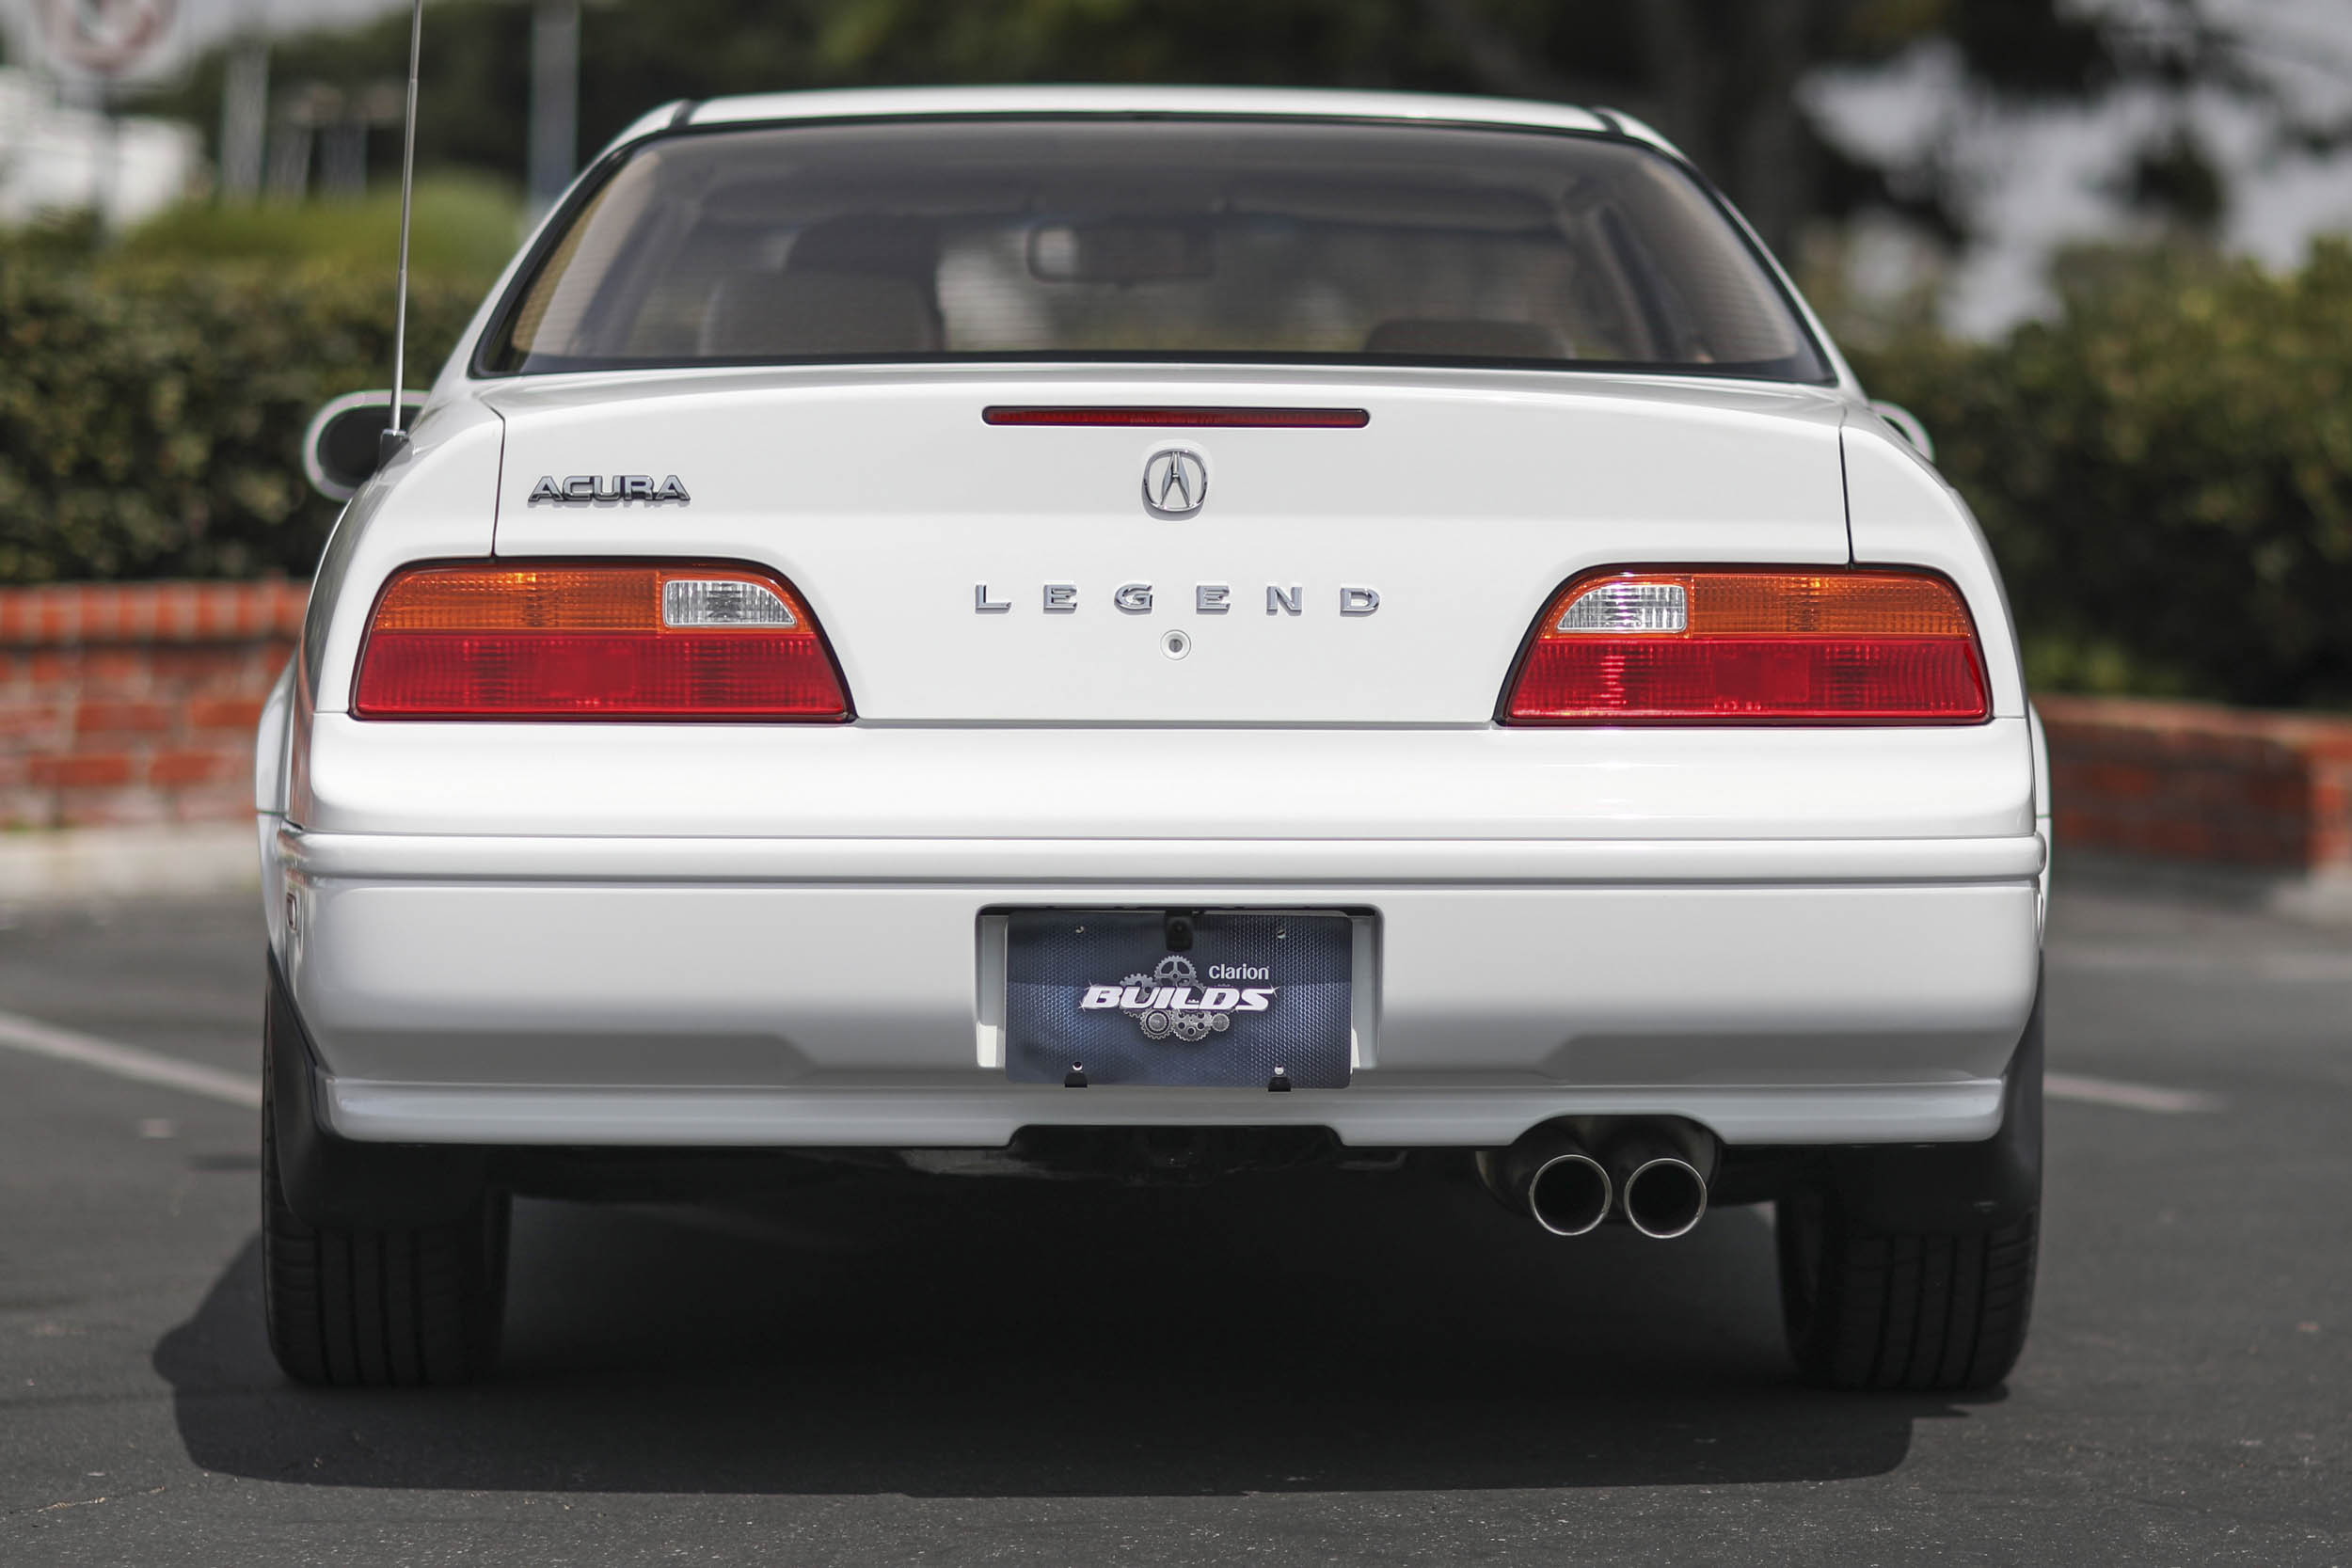 1994 Acura Legend Coupe LS rear